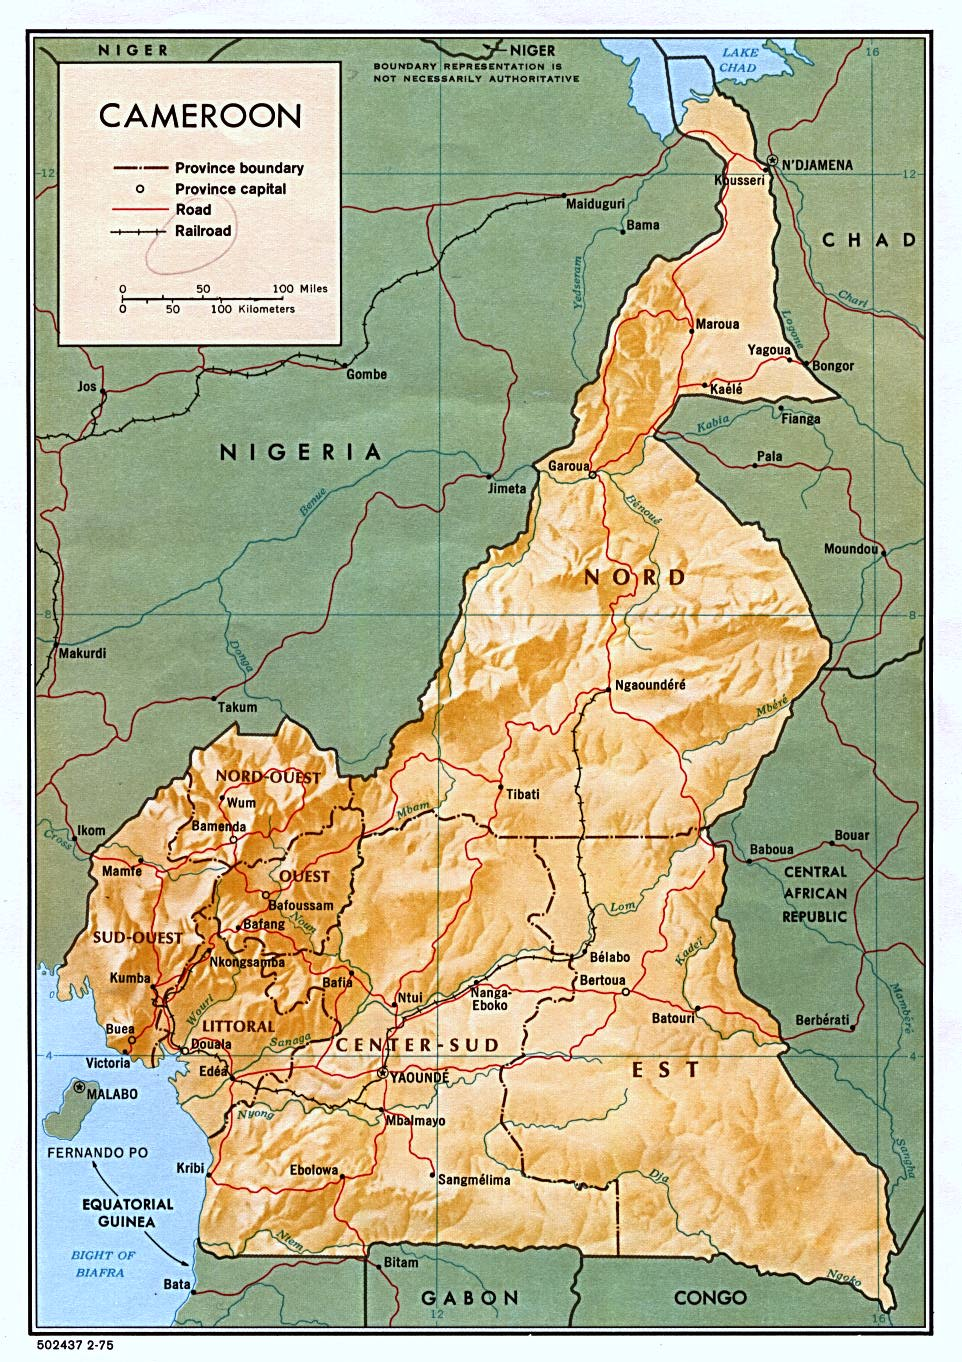 Cameroon Maps PerryCastañeda Map Collection UT Library Online - Cameroon map